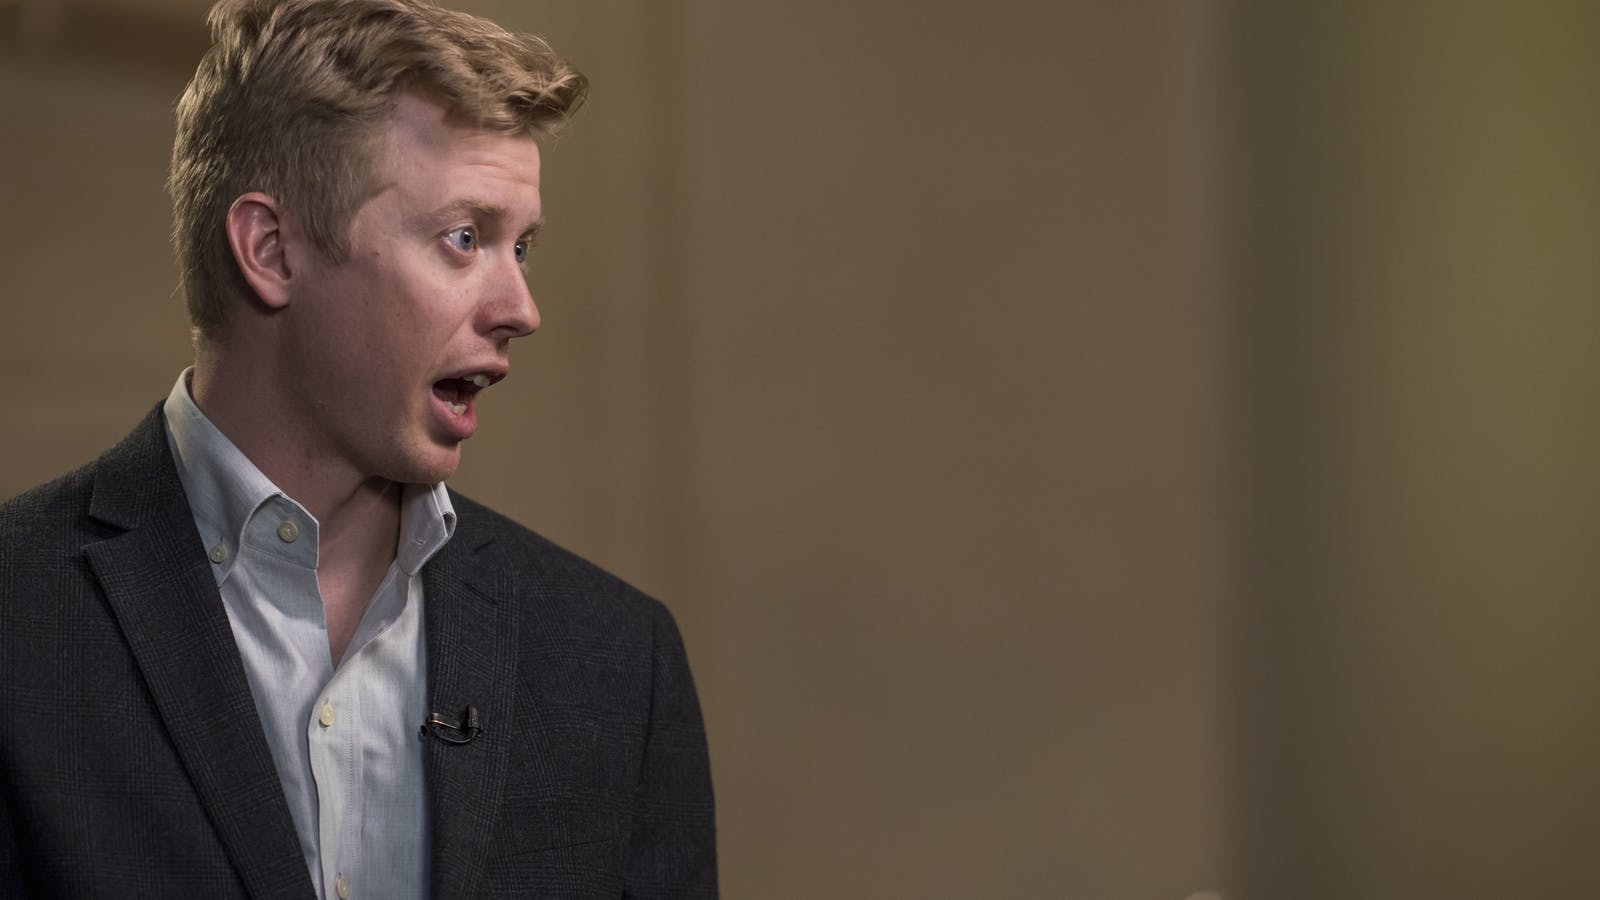 Reddit co-founder and CEO Steve Huffman. Photo by Bloomberg.